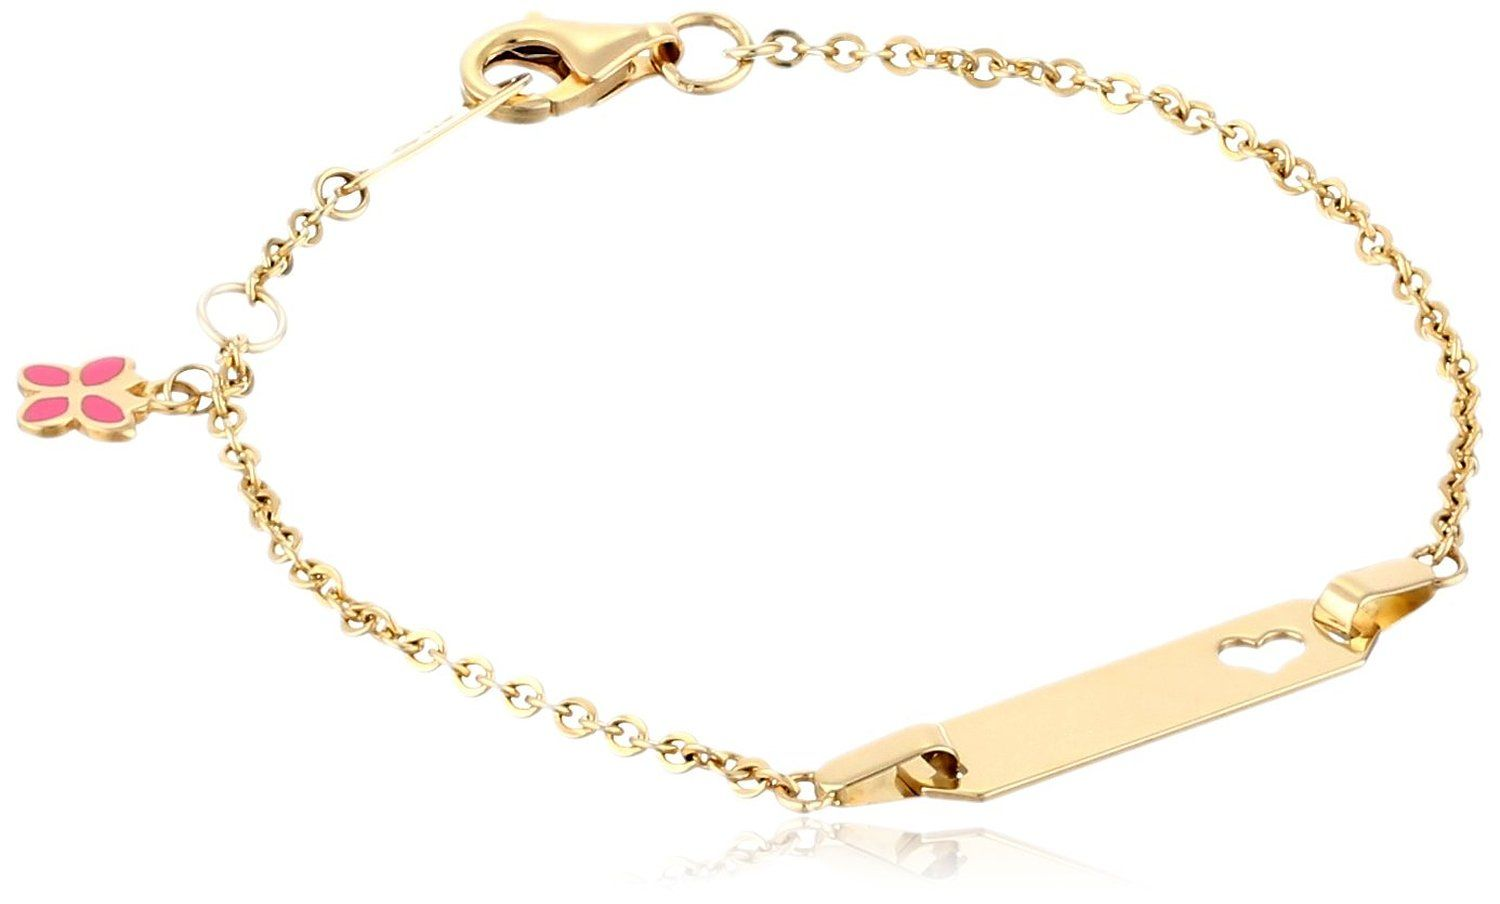 K yellow gold heart baby id rolo bracelet u check out